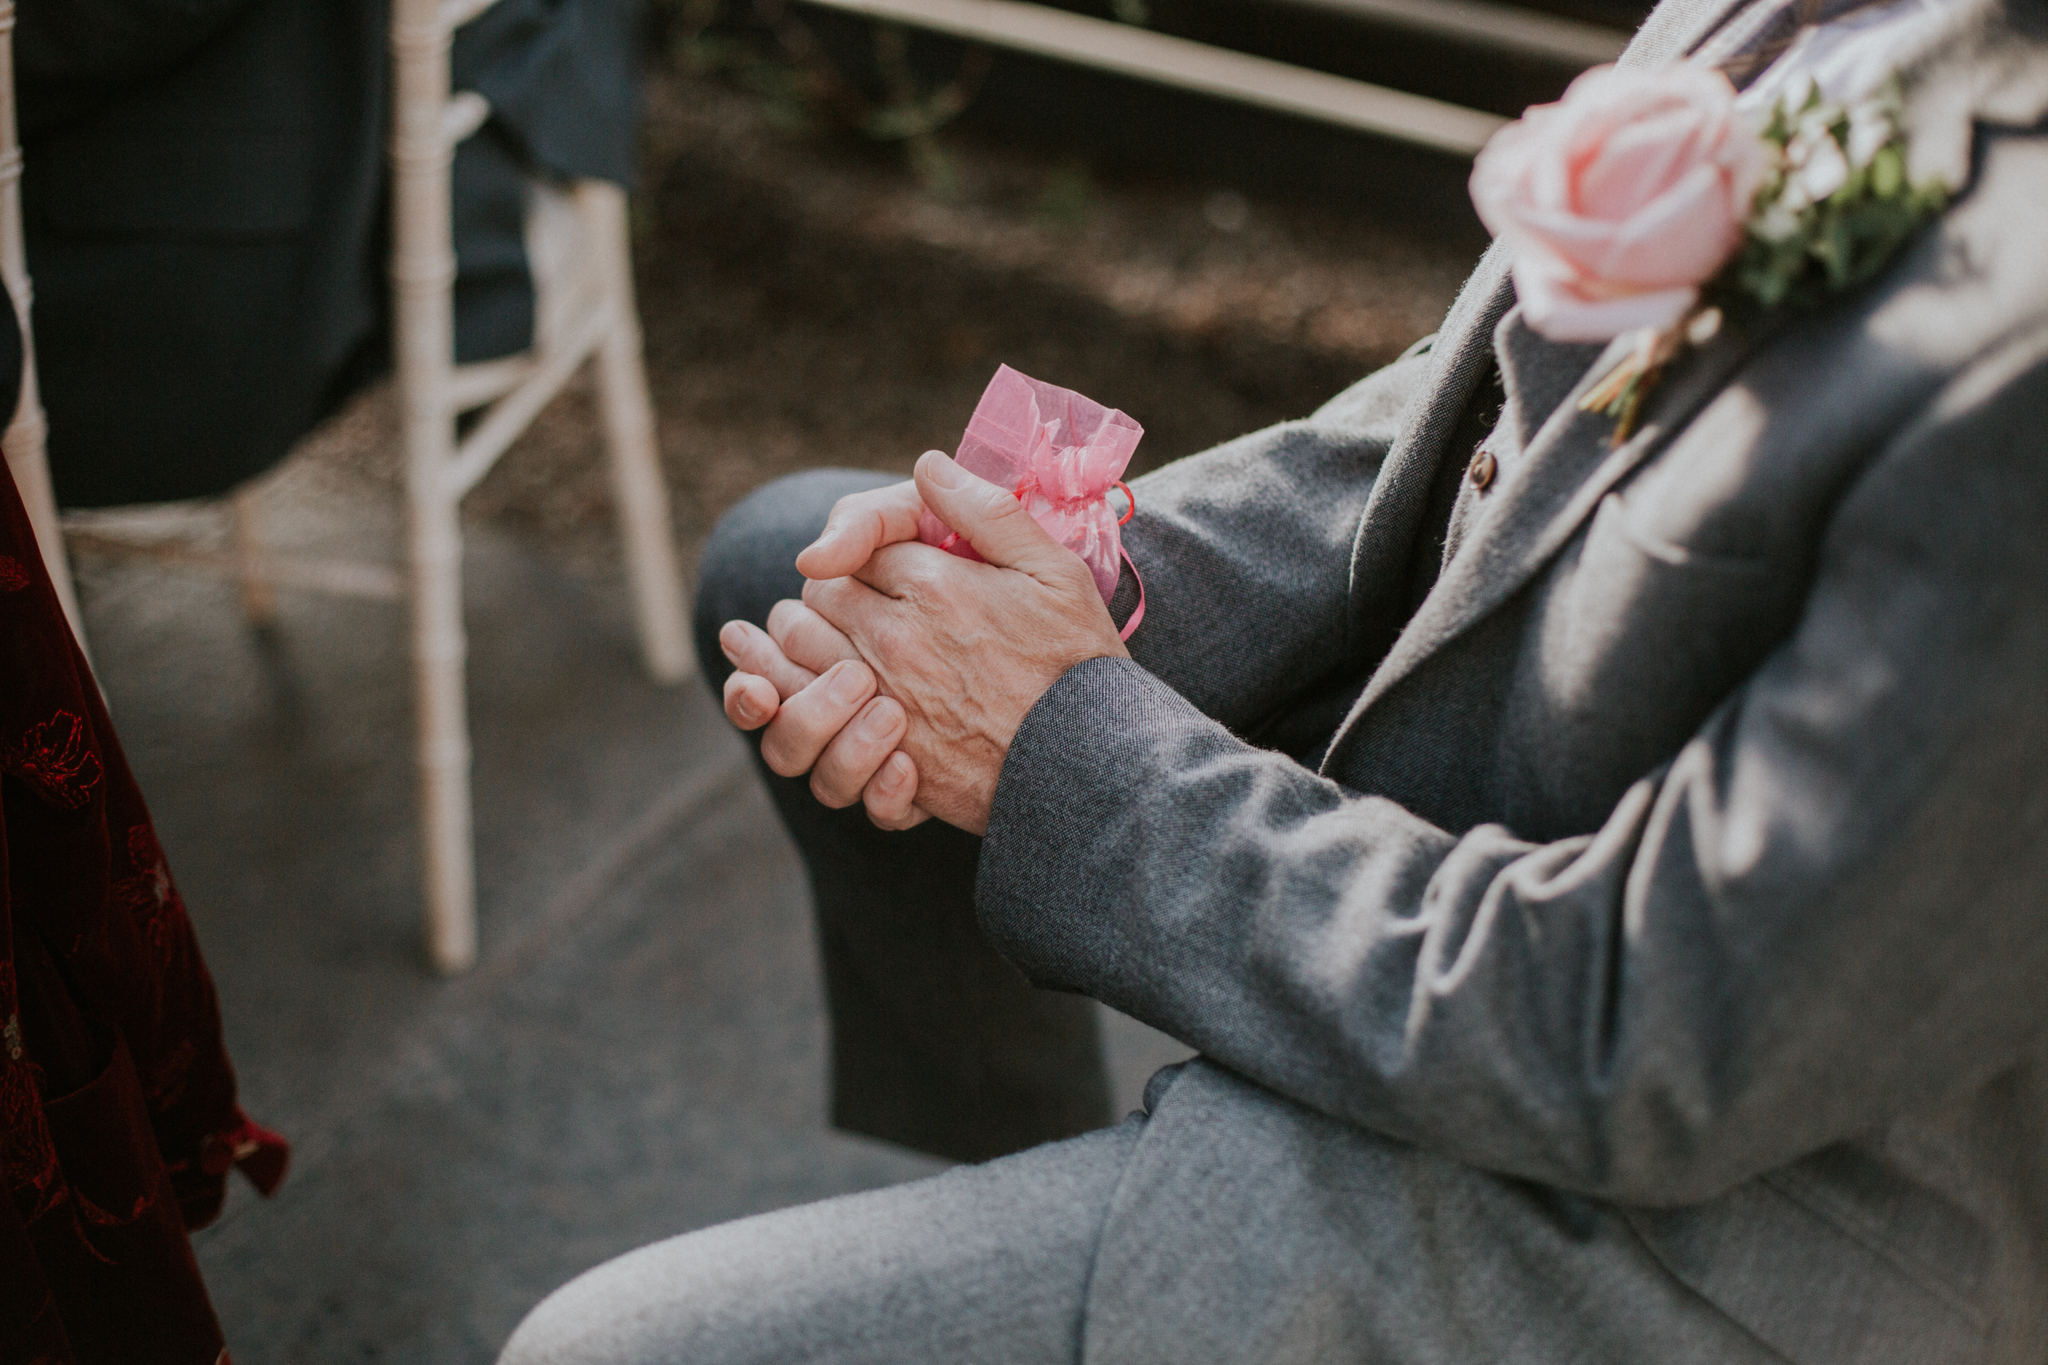 The wedding ring in the grand father's hands